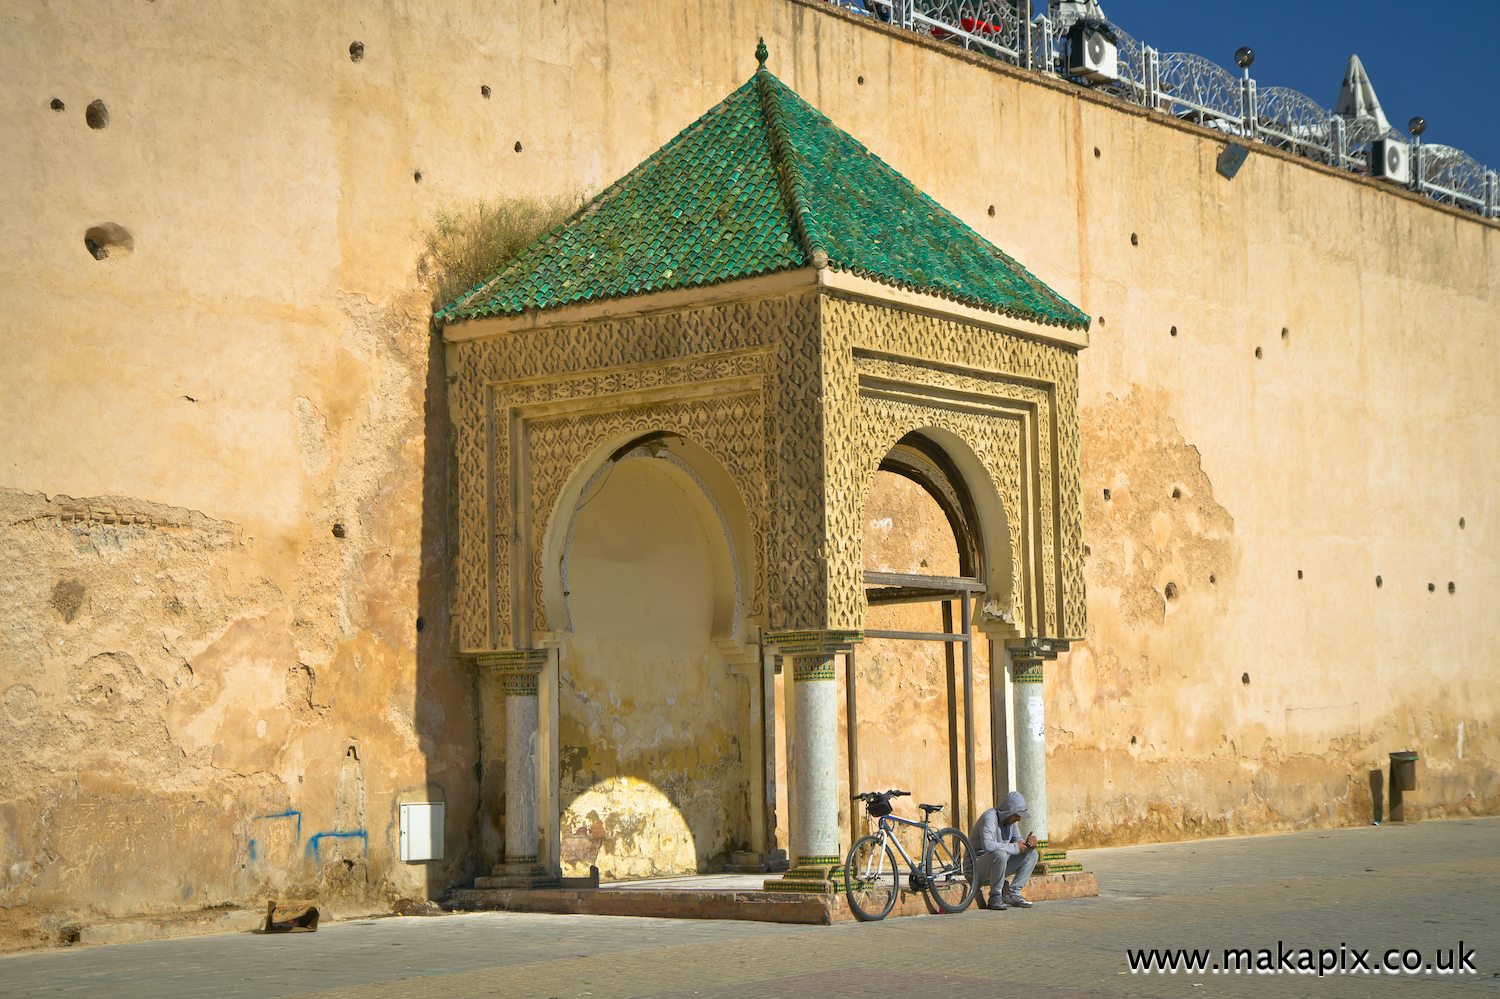 Meknes is one of the four Imperial cities of Morocco